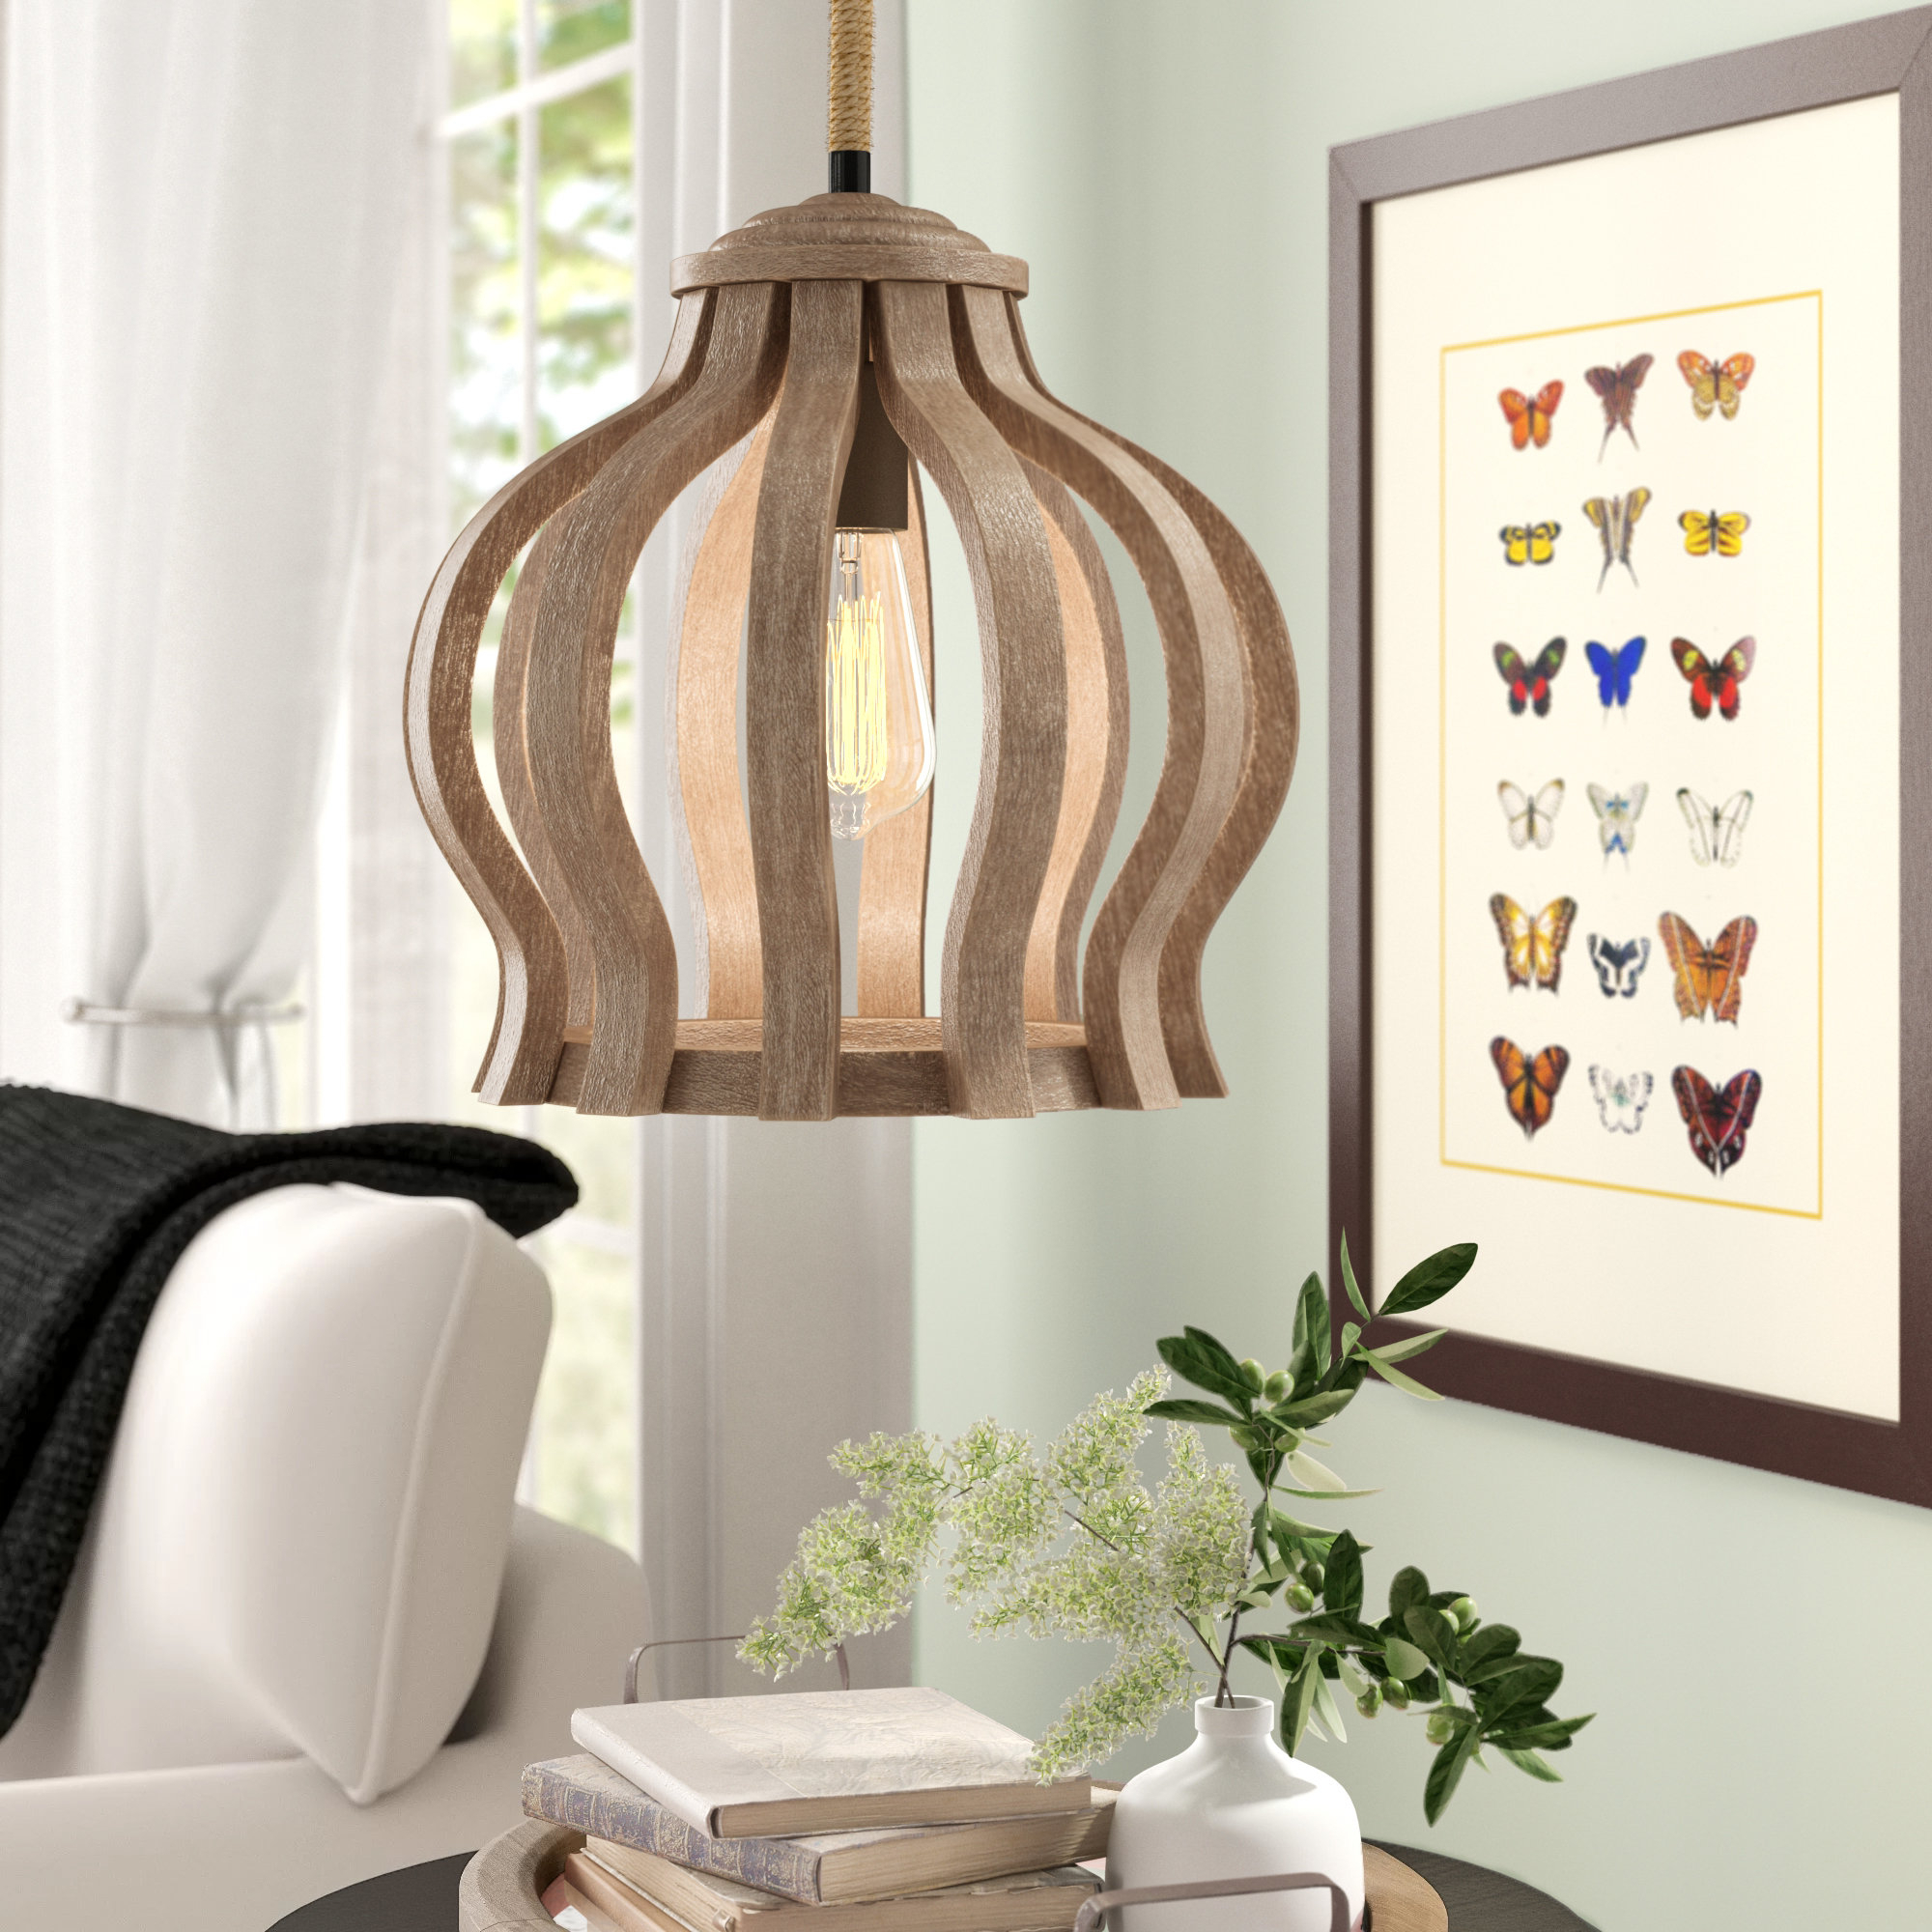 Famous Reclaimed Wood Pendant Light (View 6 of 25)